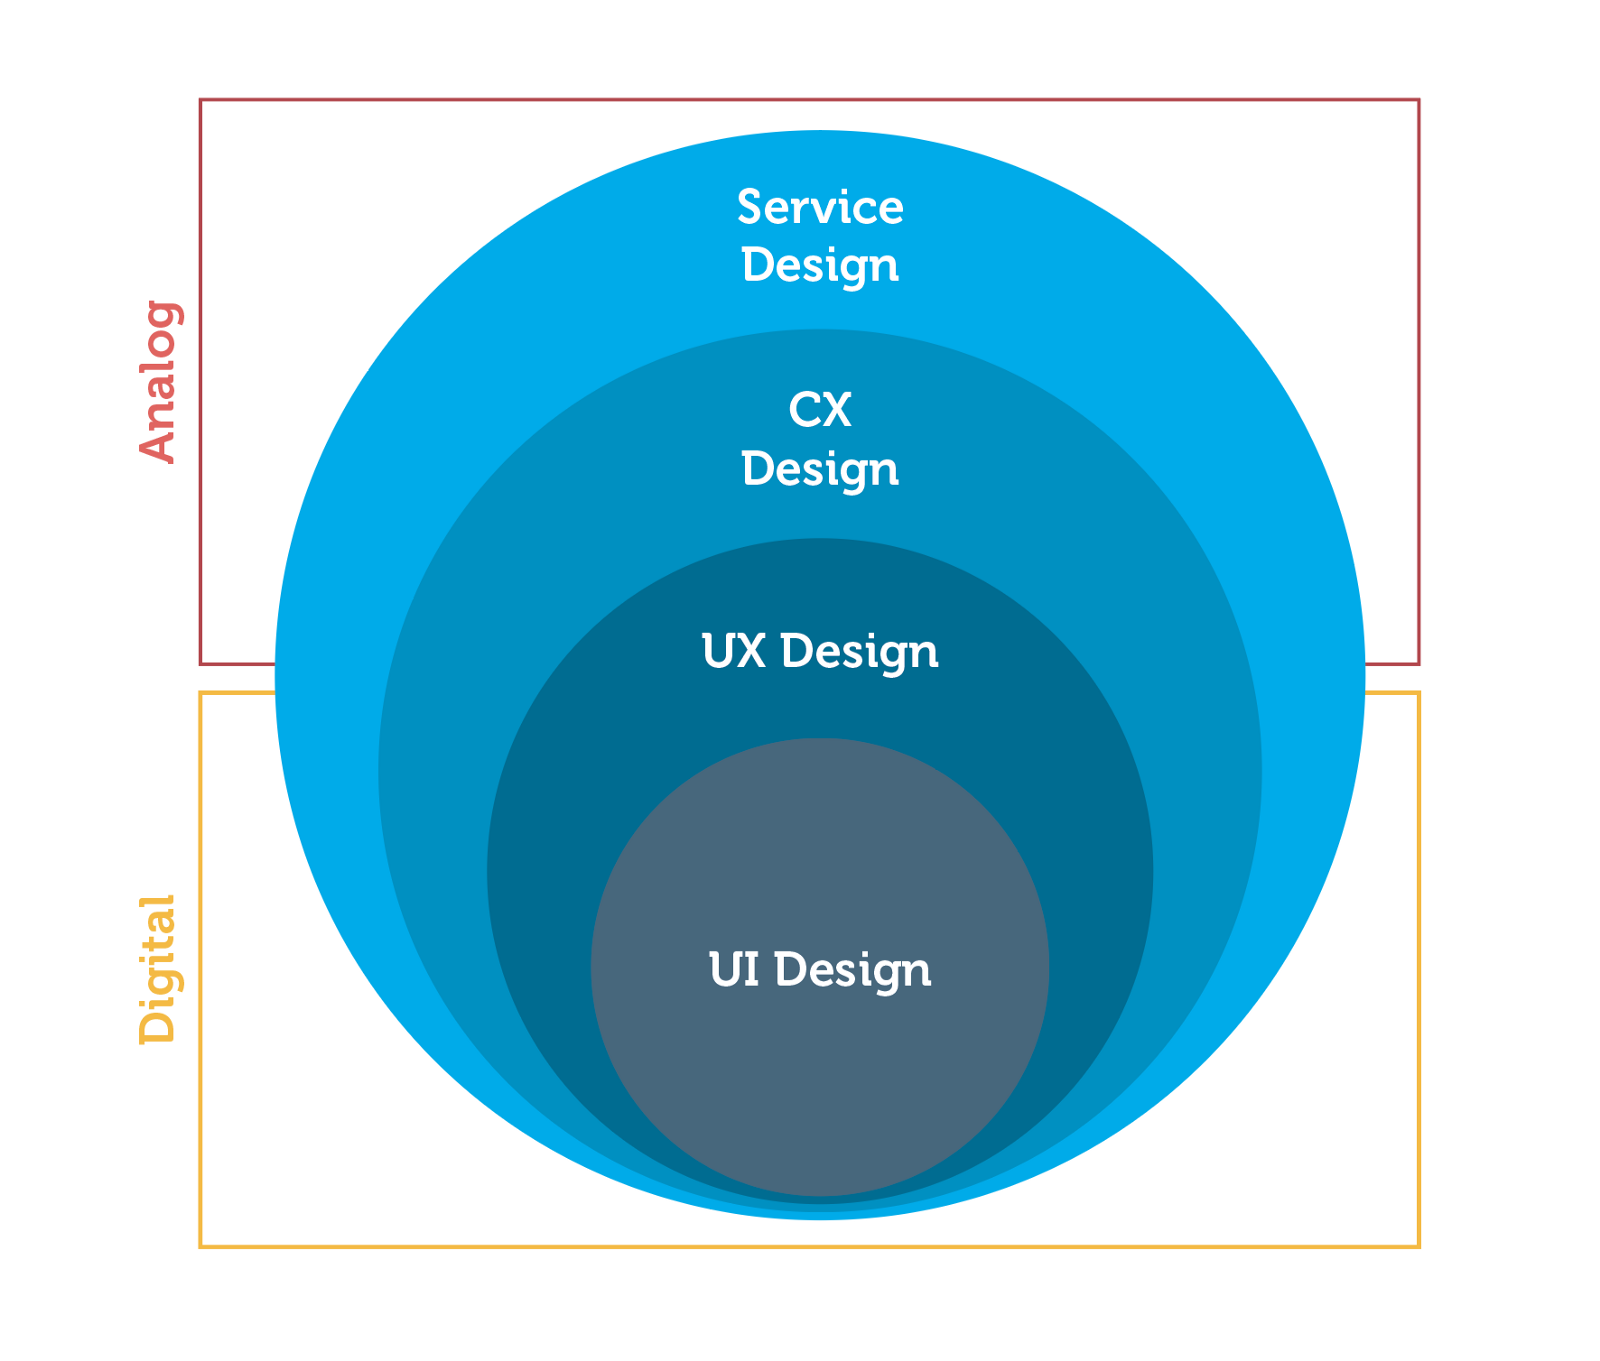 7 ux principles by a service design company ux planet for Service design firms